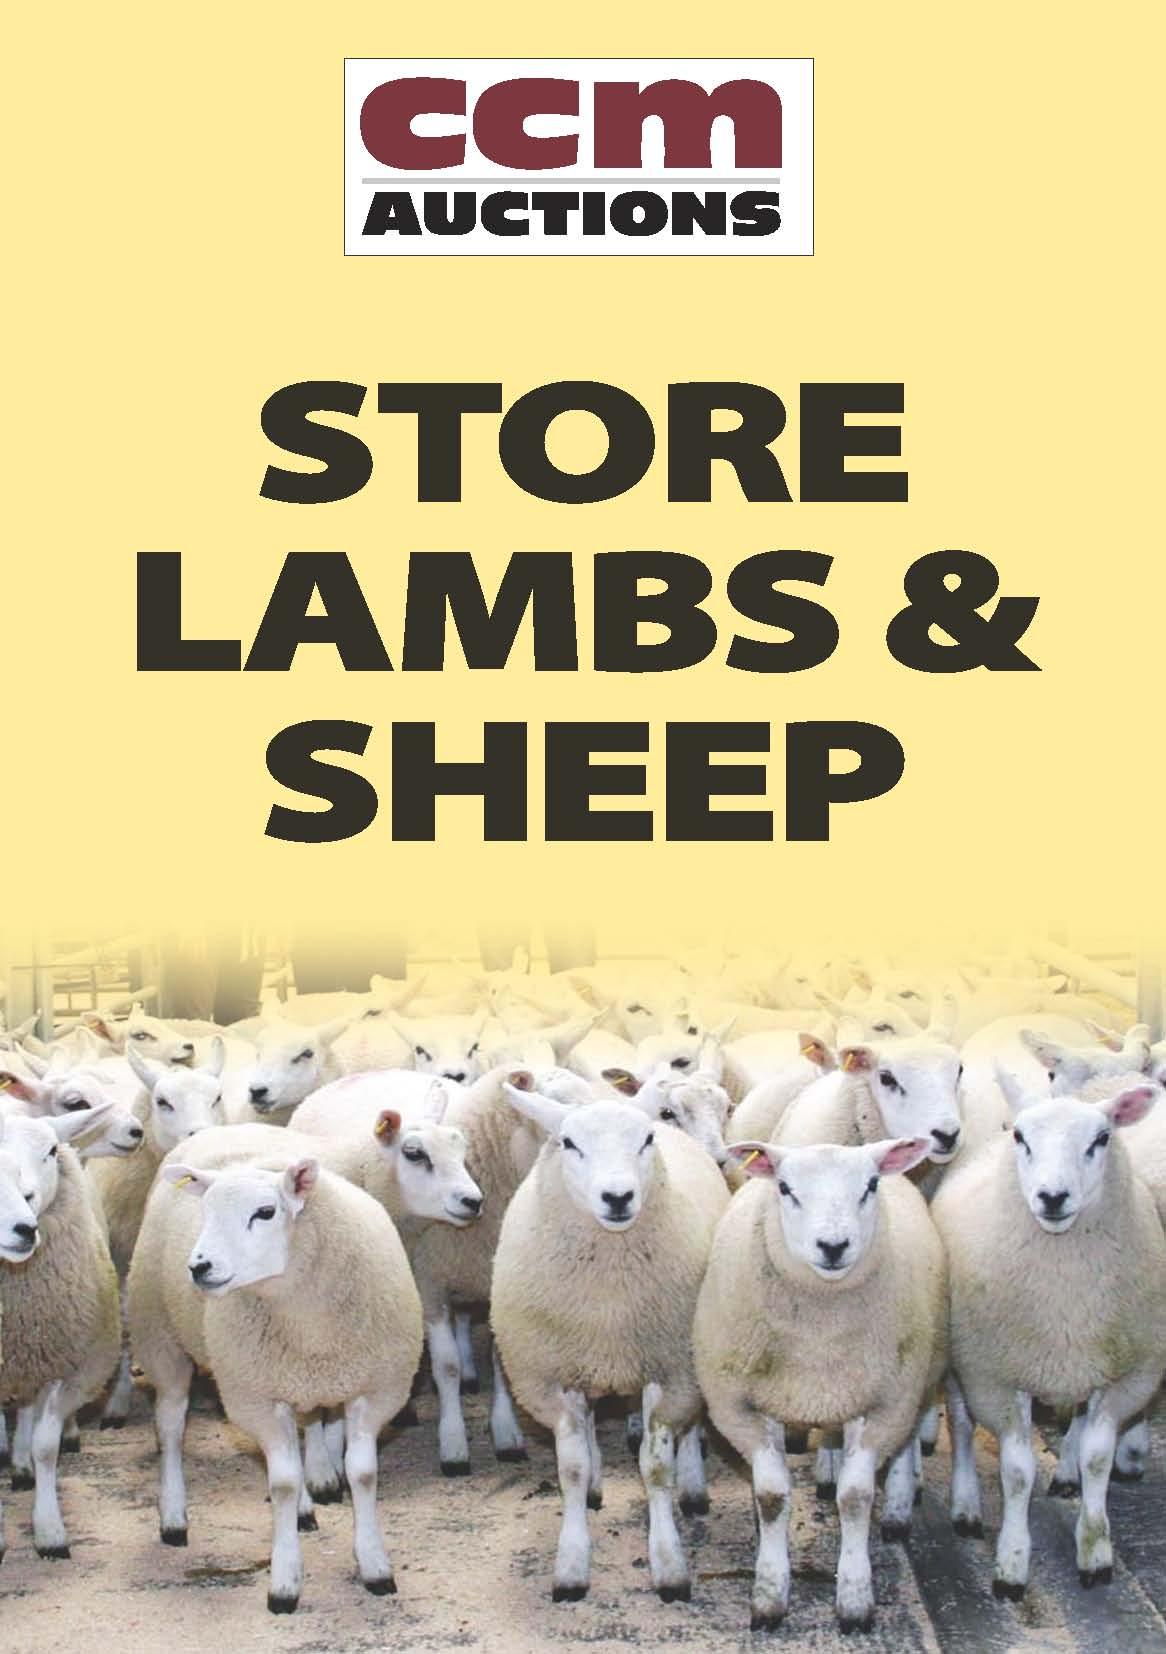 STORE LAMBS & BREEDING SHEEP - WEDNESDAY 4TH NOVEMBER 2020